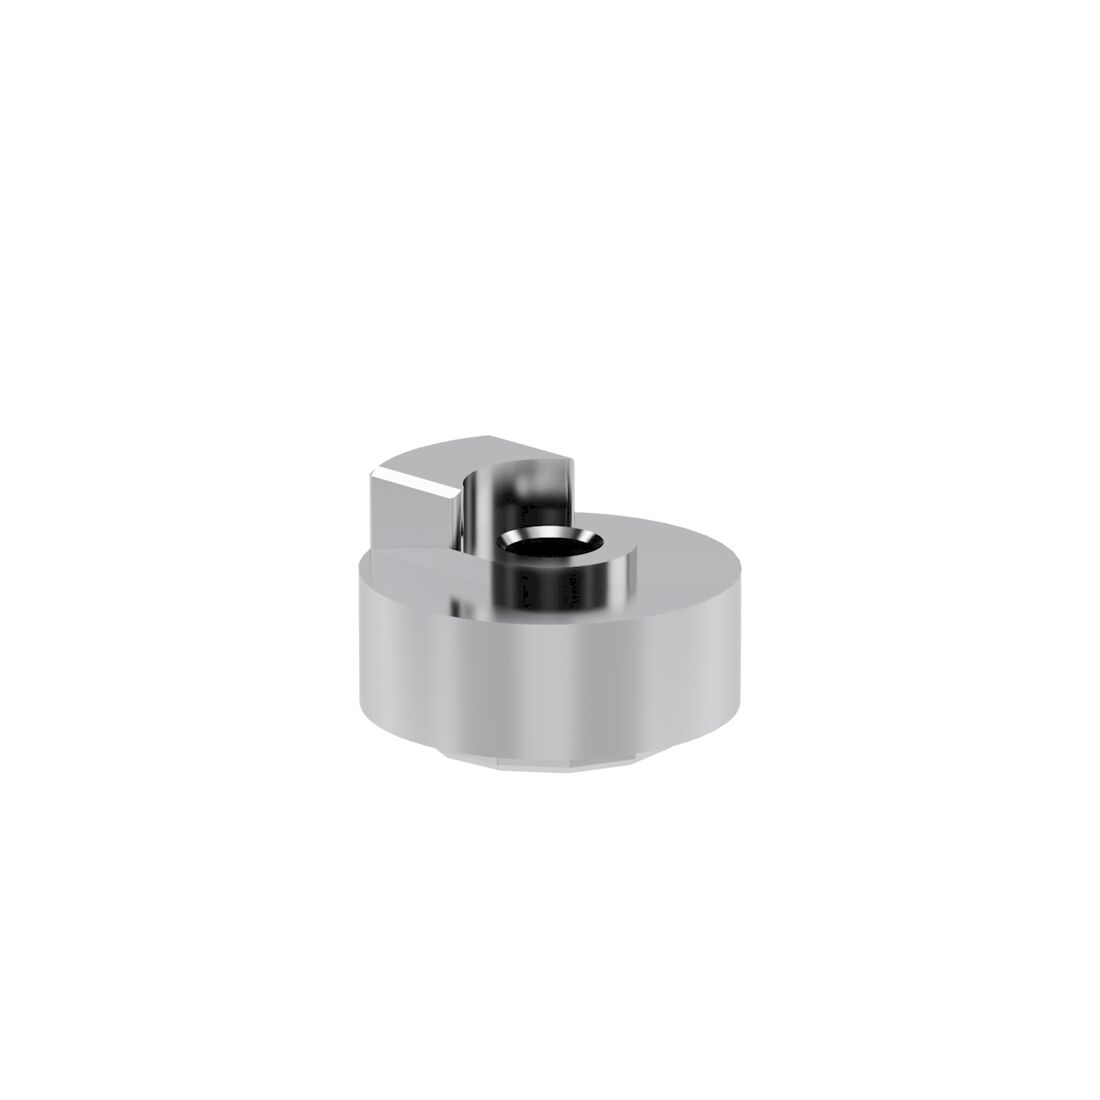 CYBEX Spacer For Quick Release Skewer 8 mm in Silver - 8mm large image number 1